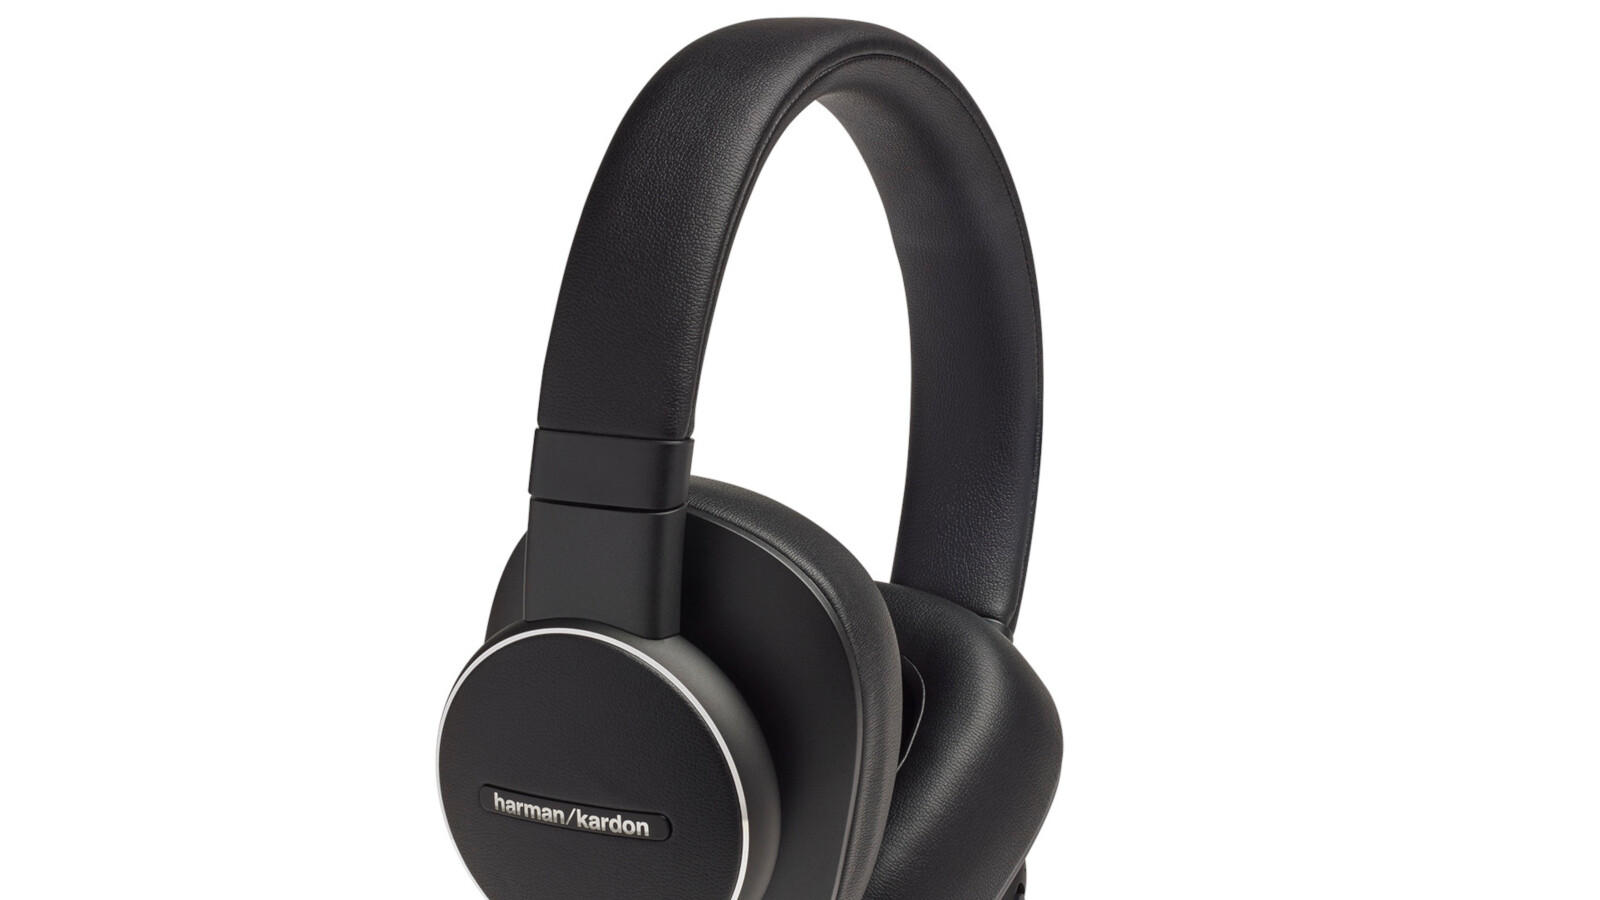 Harman Kardon's new FLY earphones are a serious Apple AirPods competitor